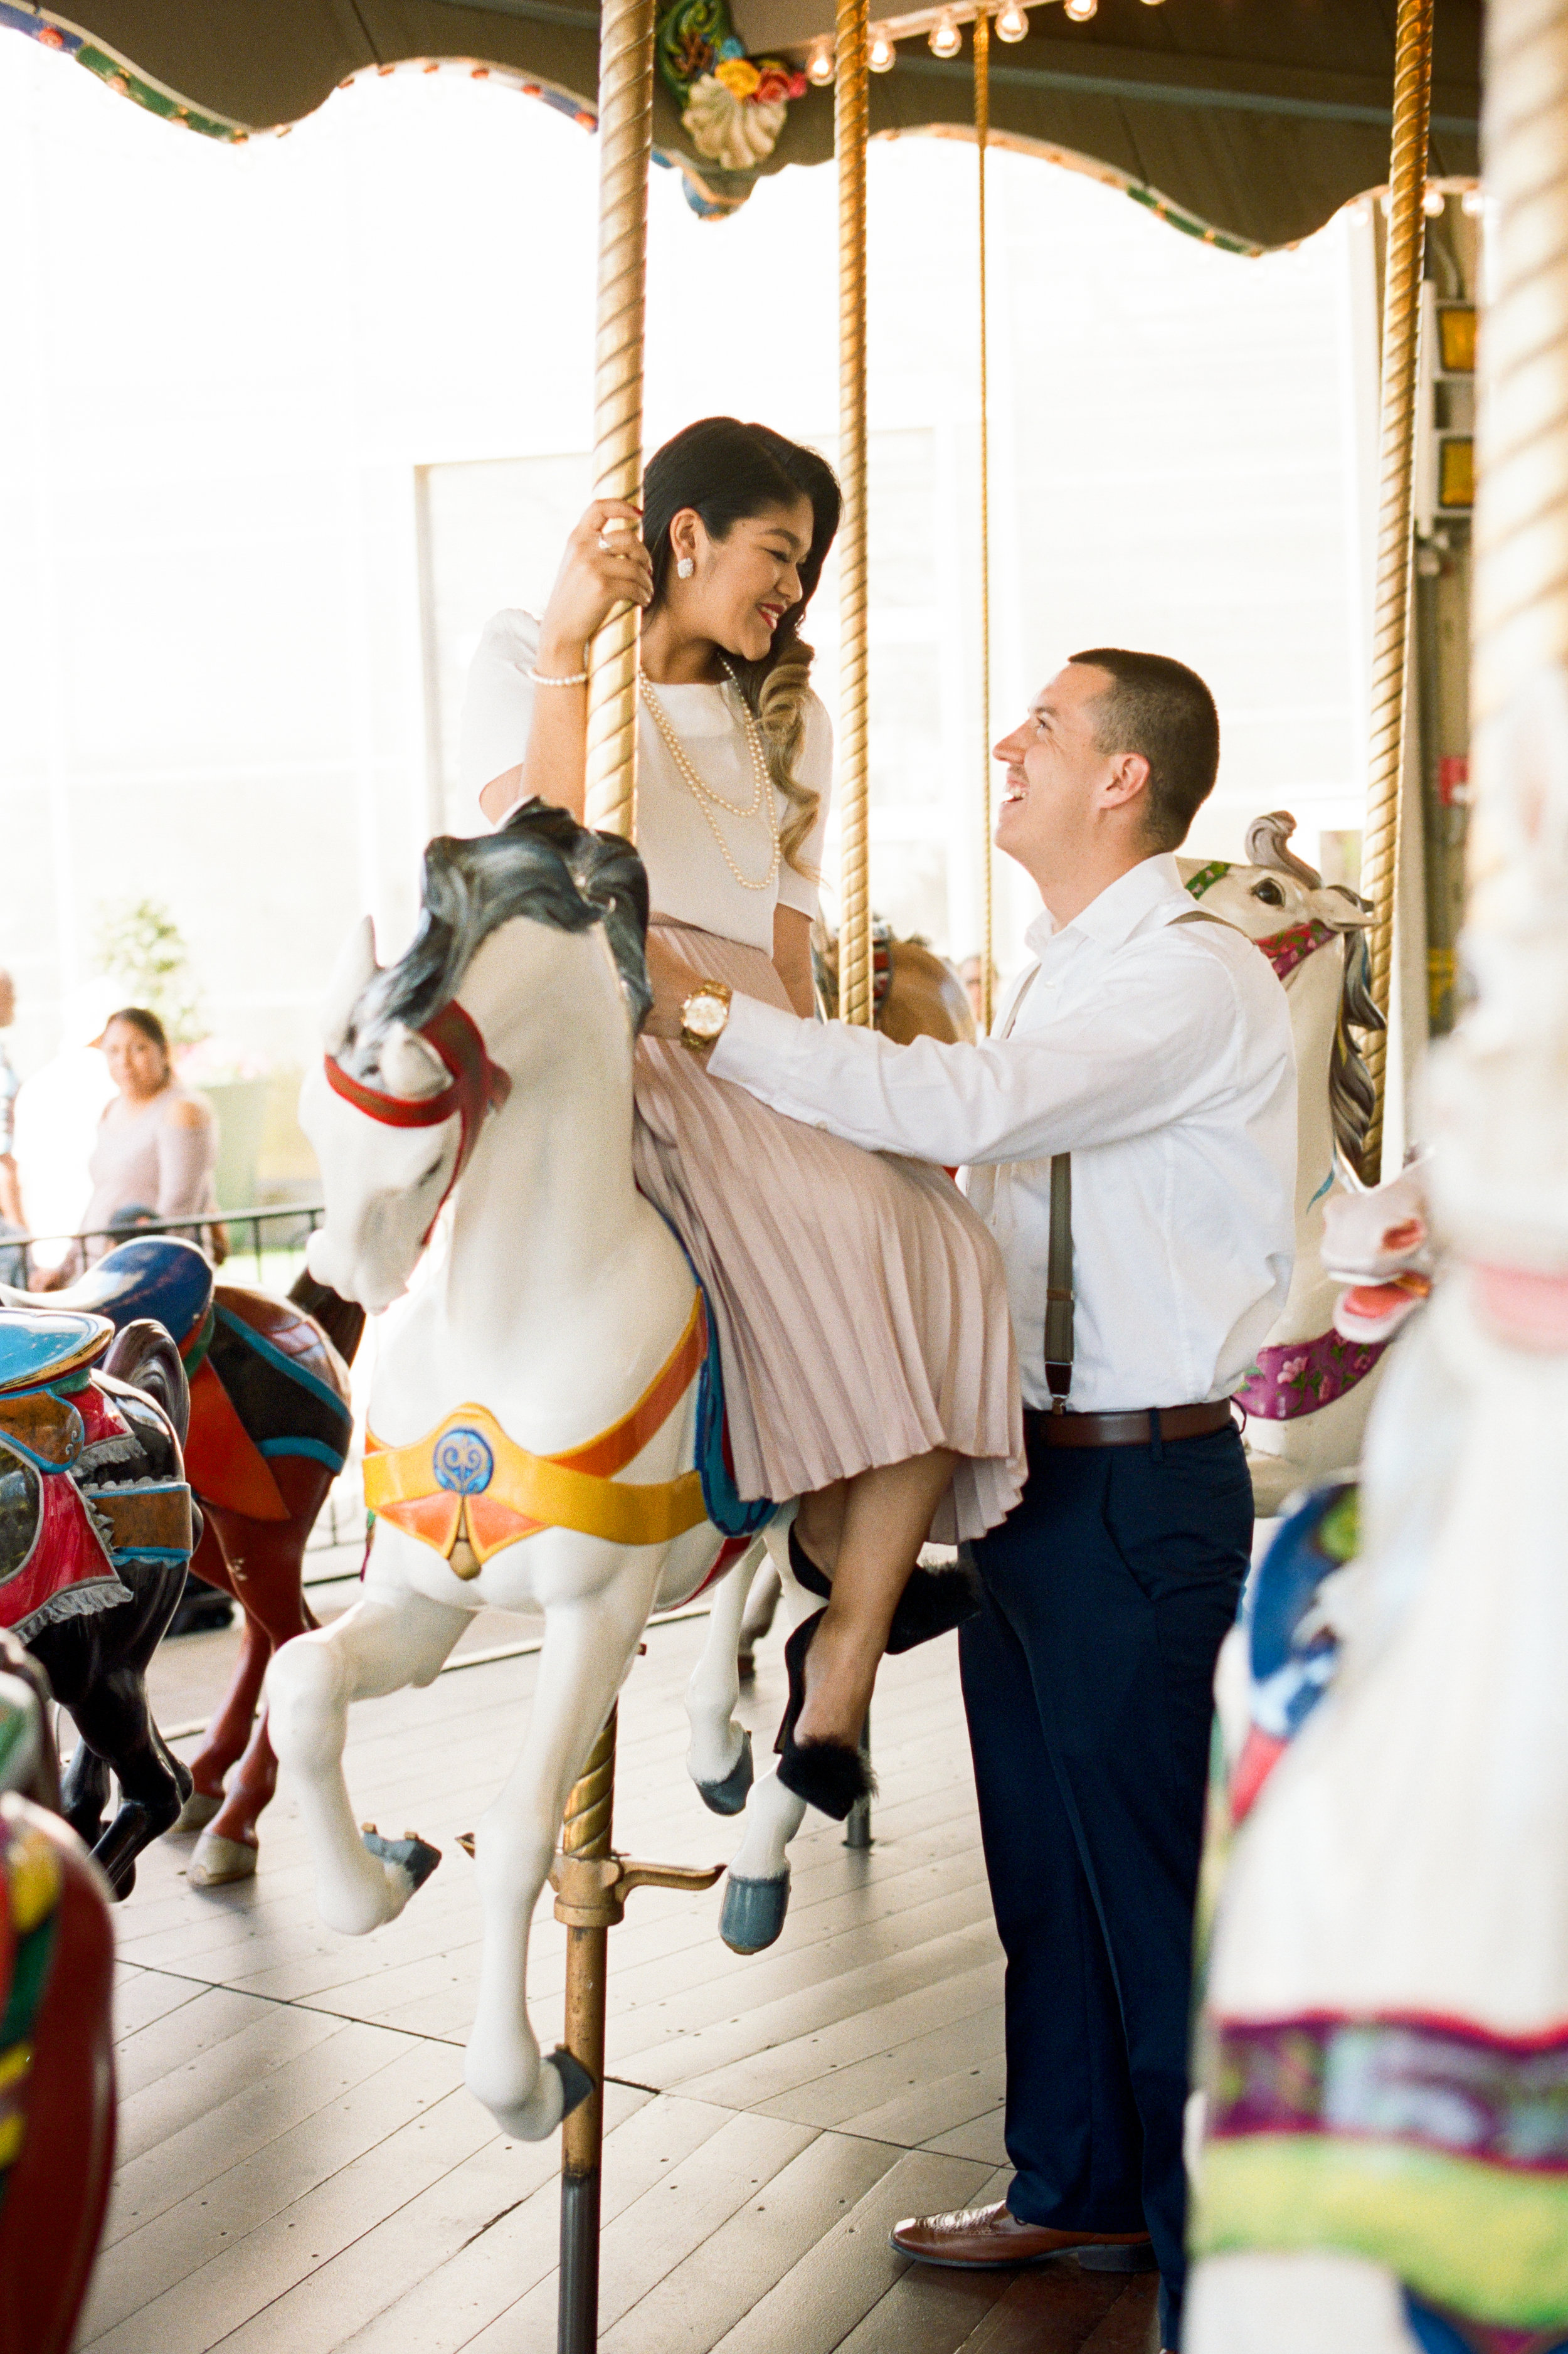 state-fair-of-texas-engagements-ar-photography-baylee-dylan-155.jpg